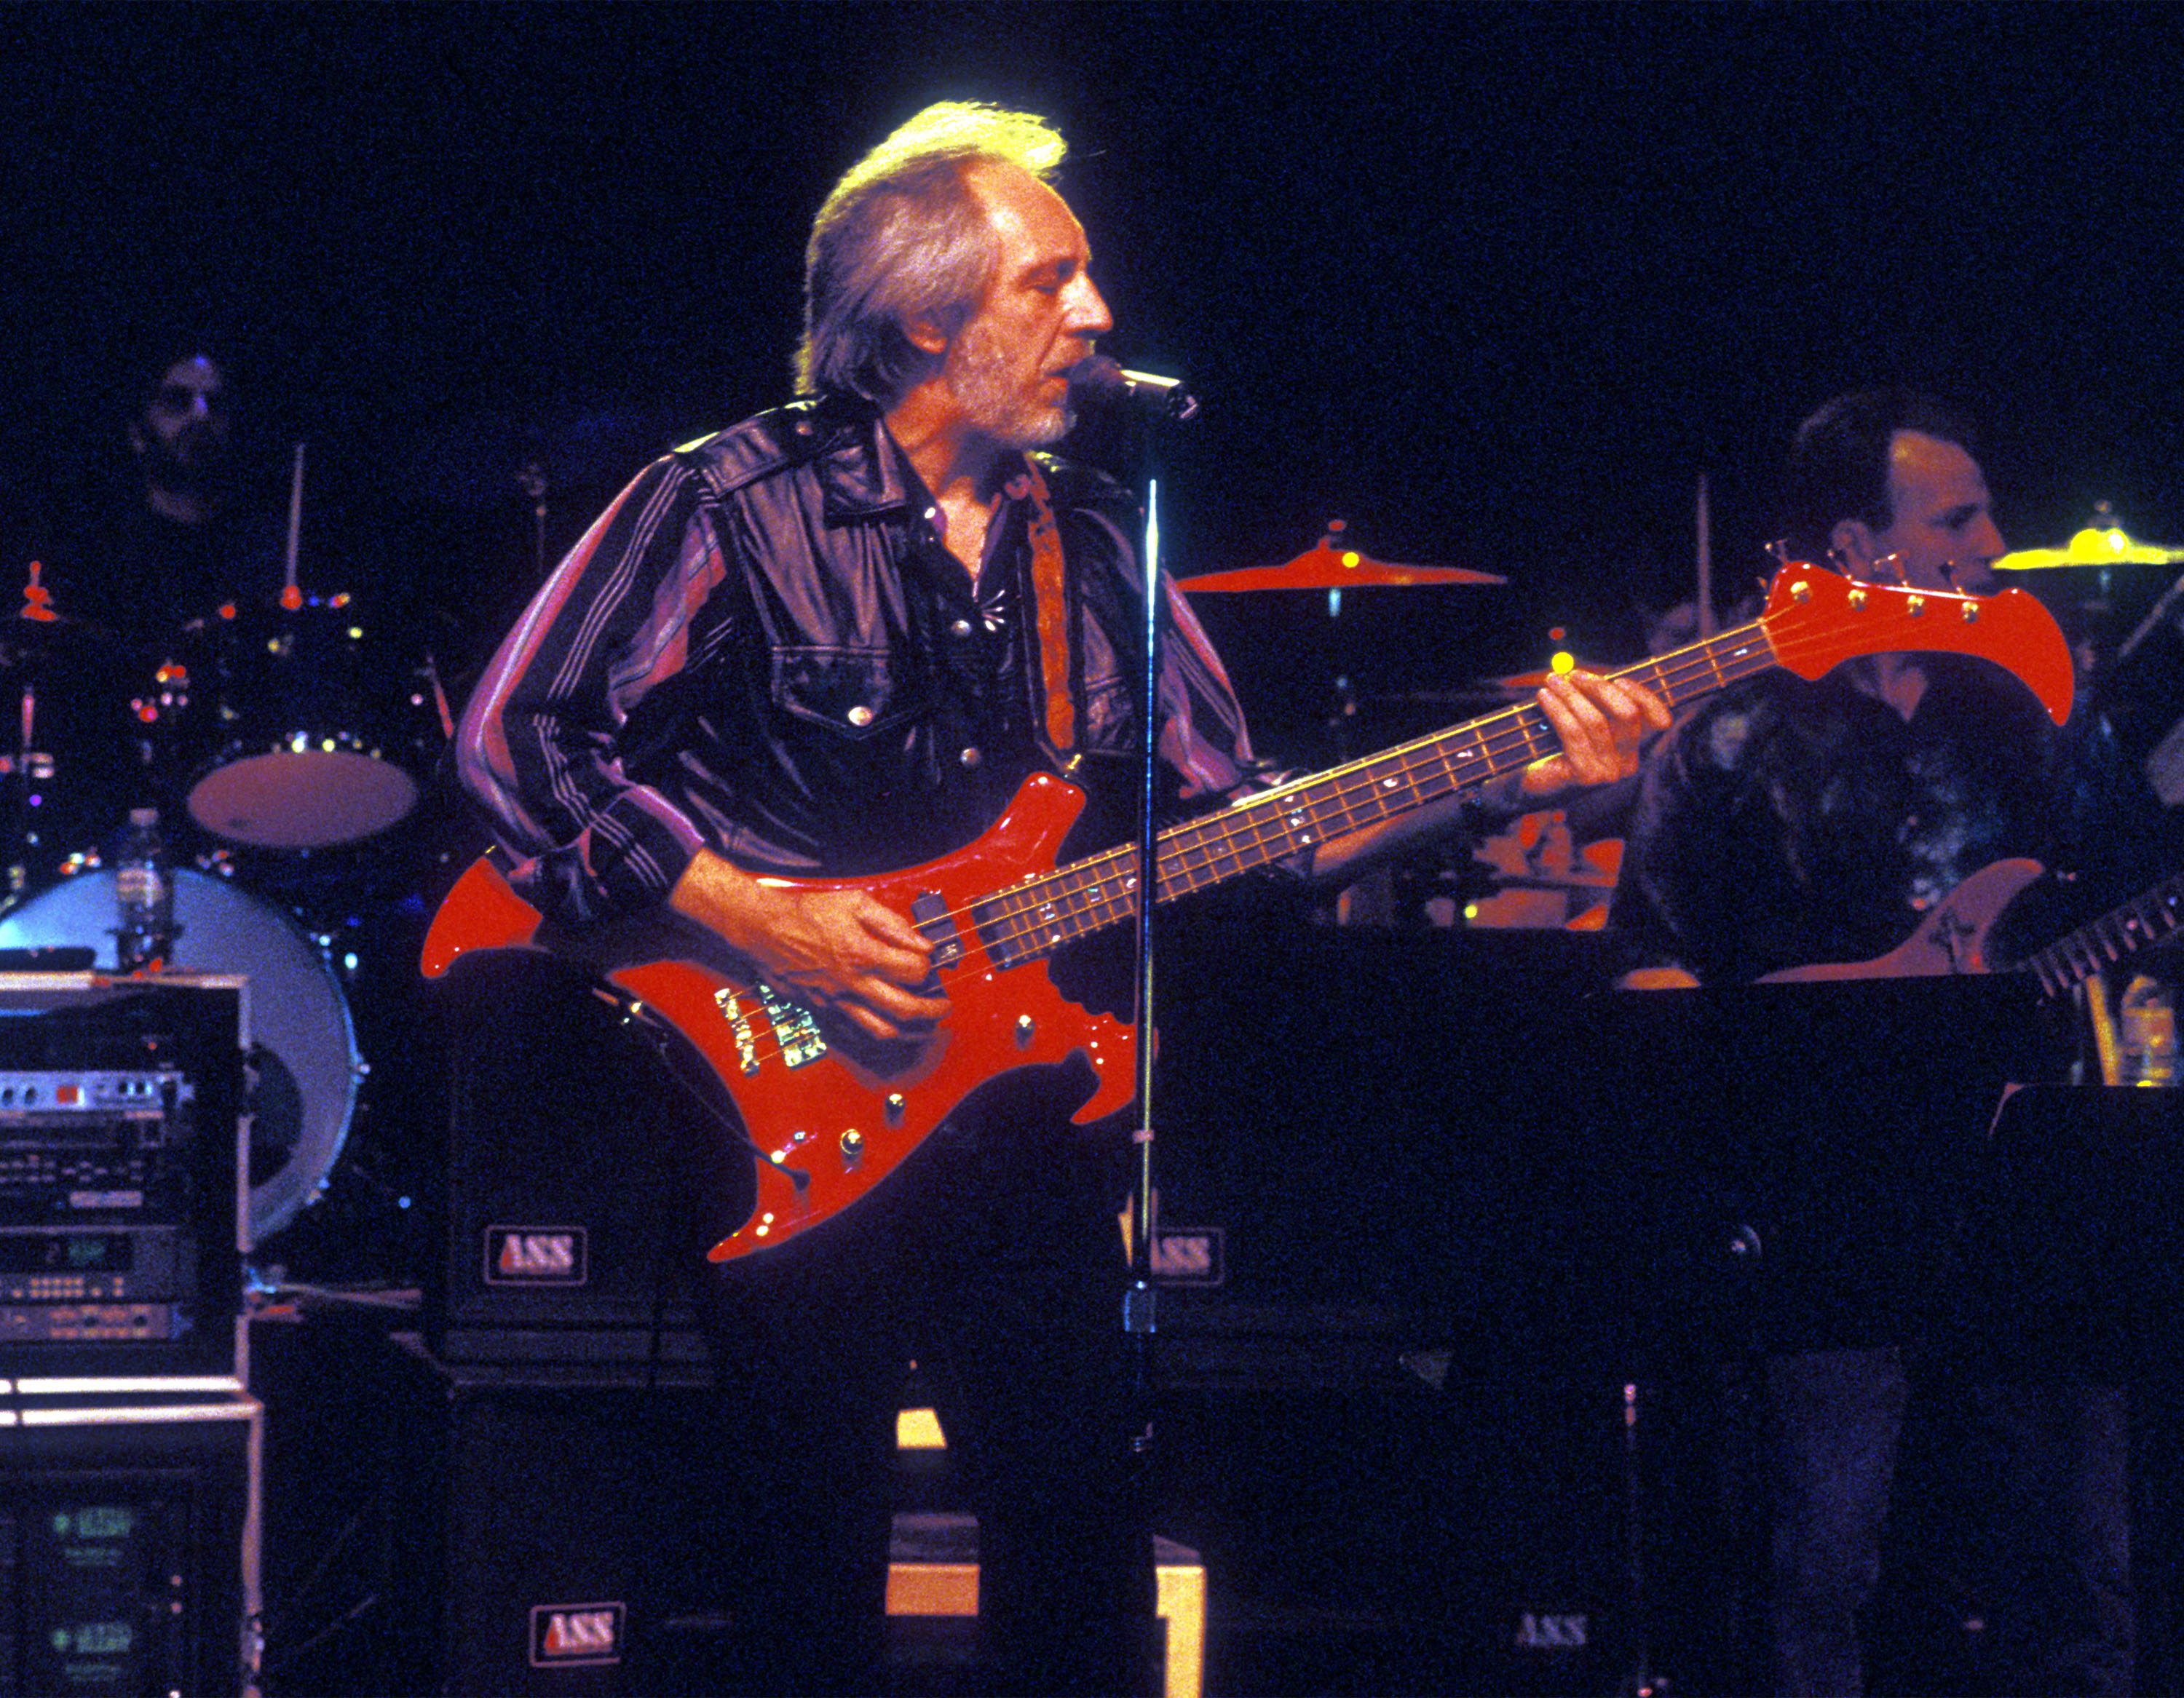 VANCOUVER, CANADA:  John Entwistle plays with the Ringo Starr band in the summer of 1995 in Vancouver, Candada.  Entwistle died June 27, 2002.  (Photo by Jeff Vinnick/Getty Images)